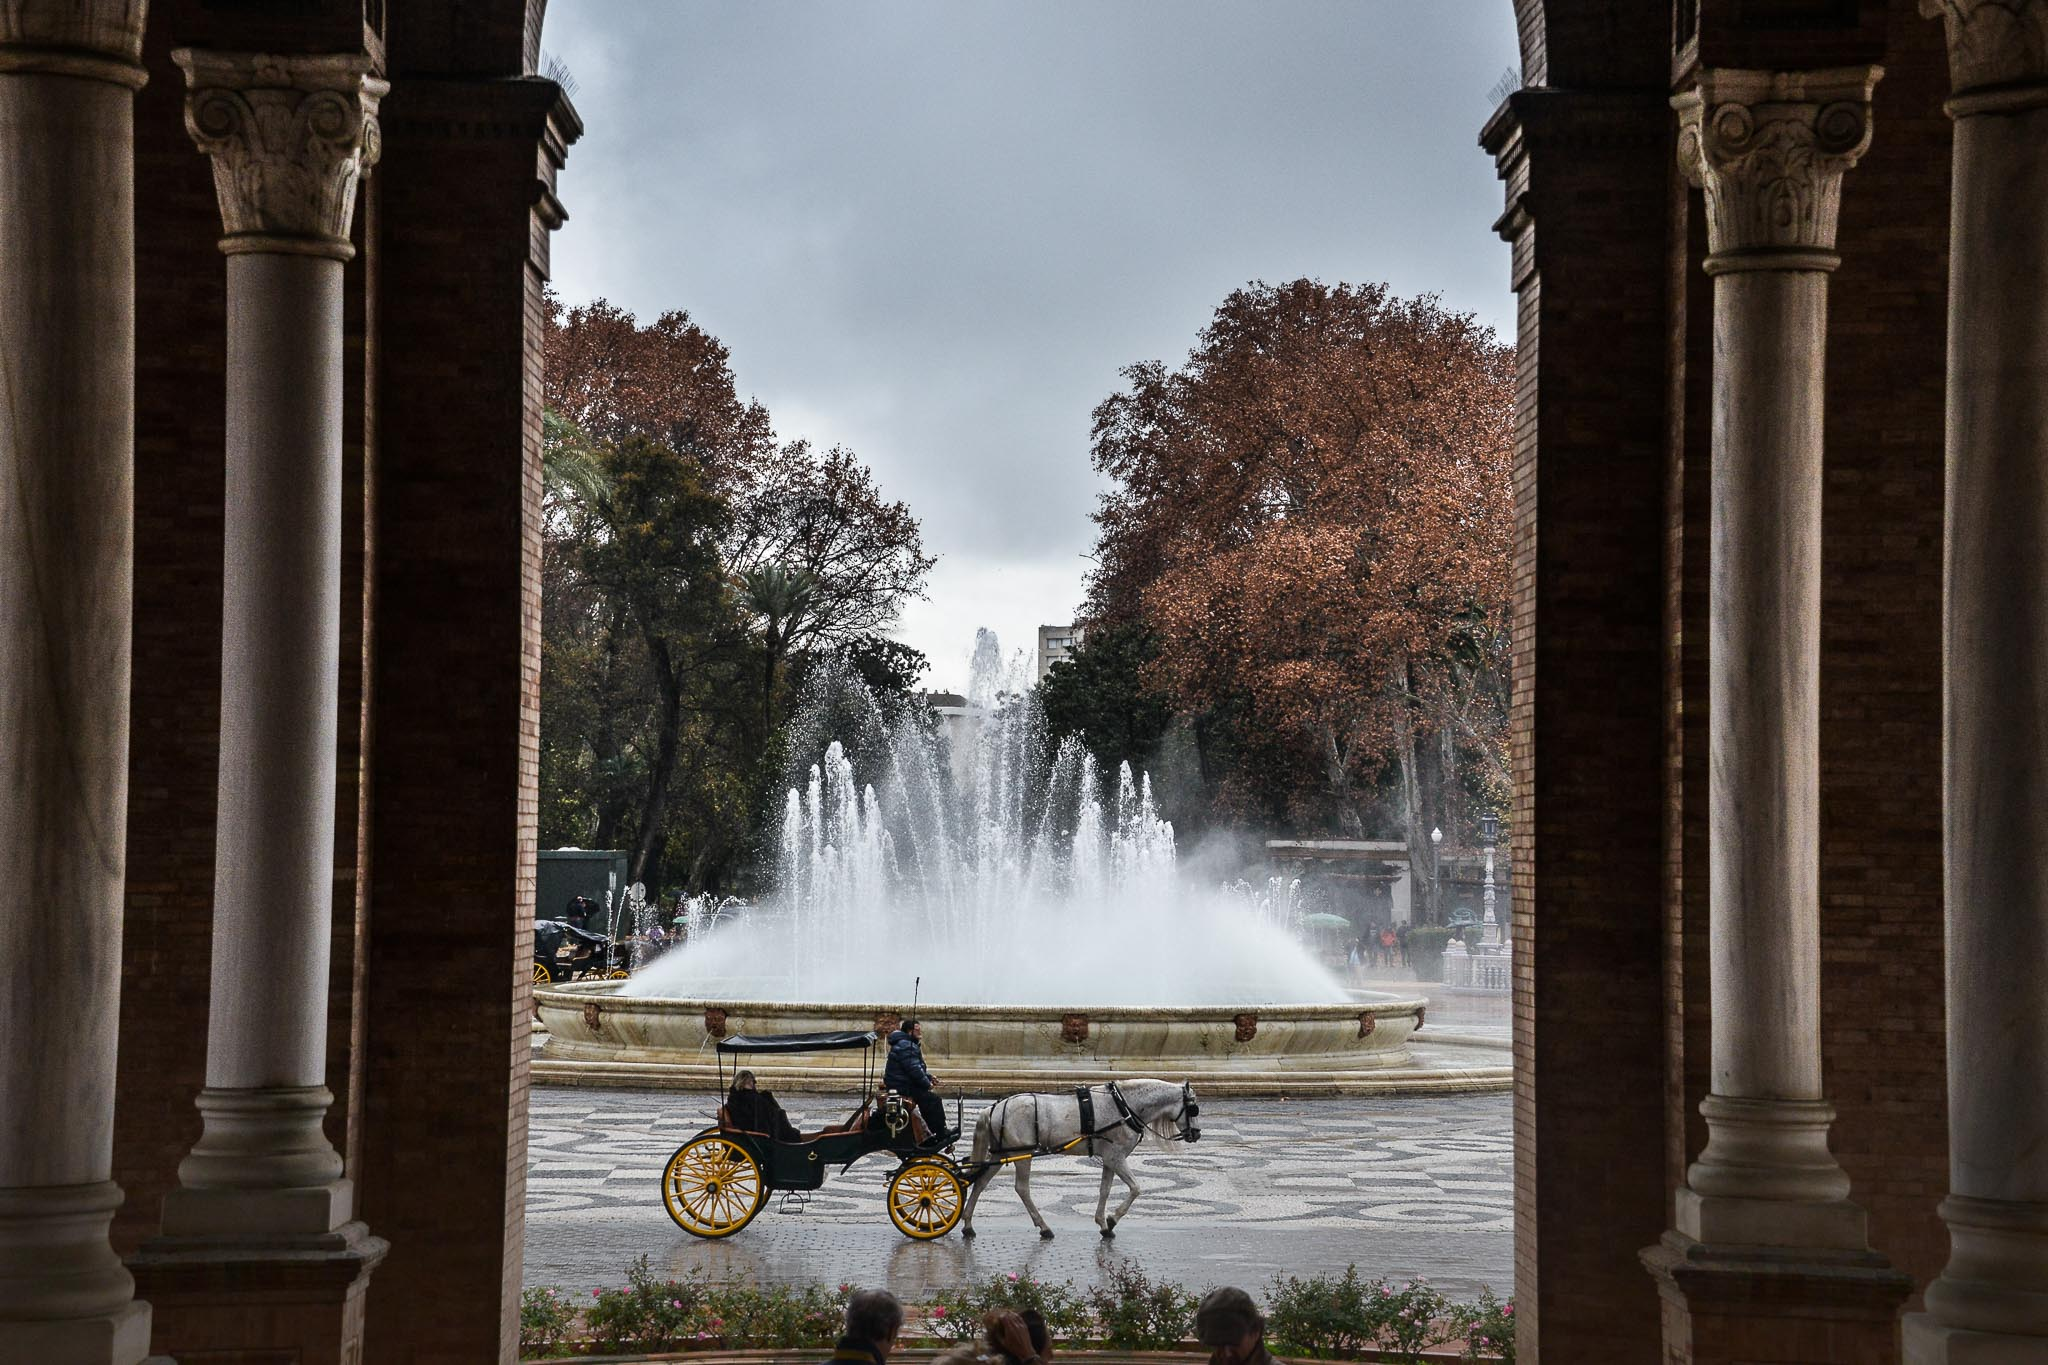 Horse & Carriage, Seville